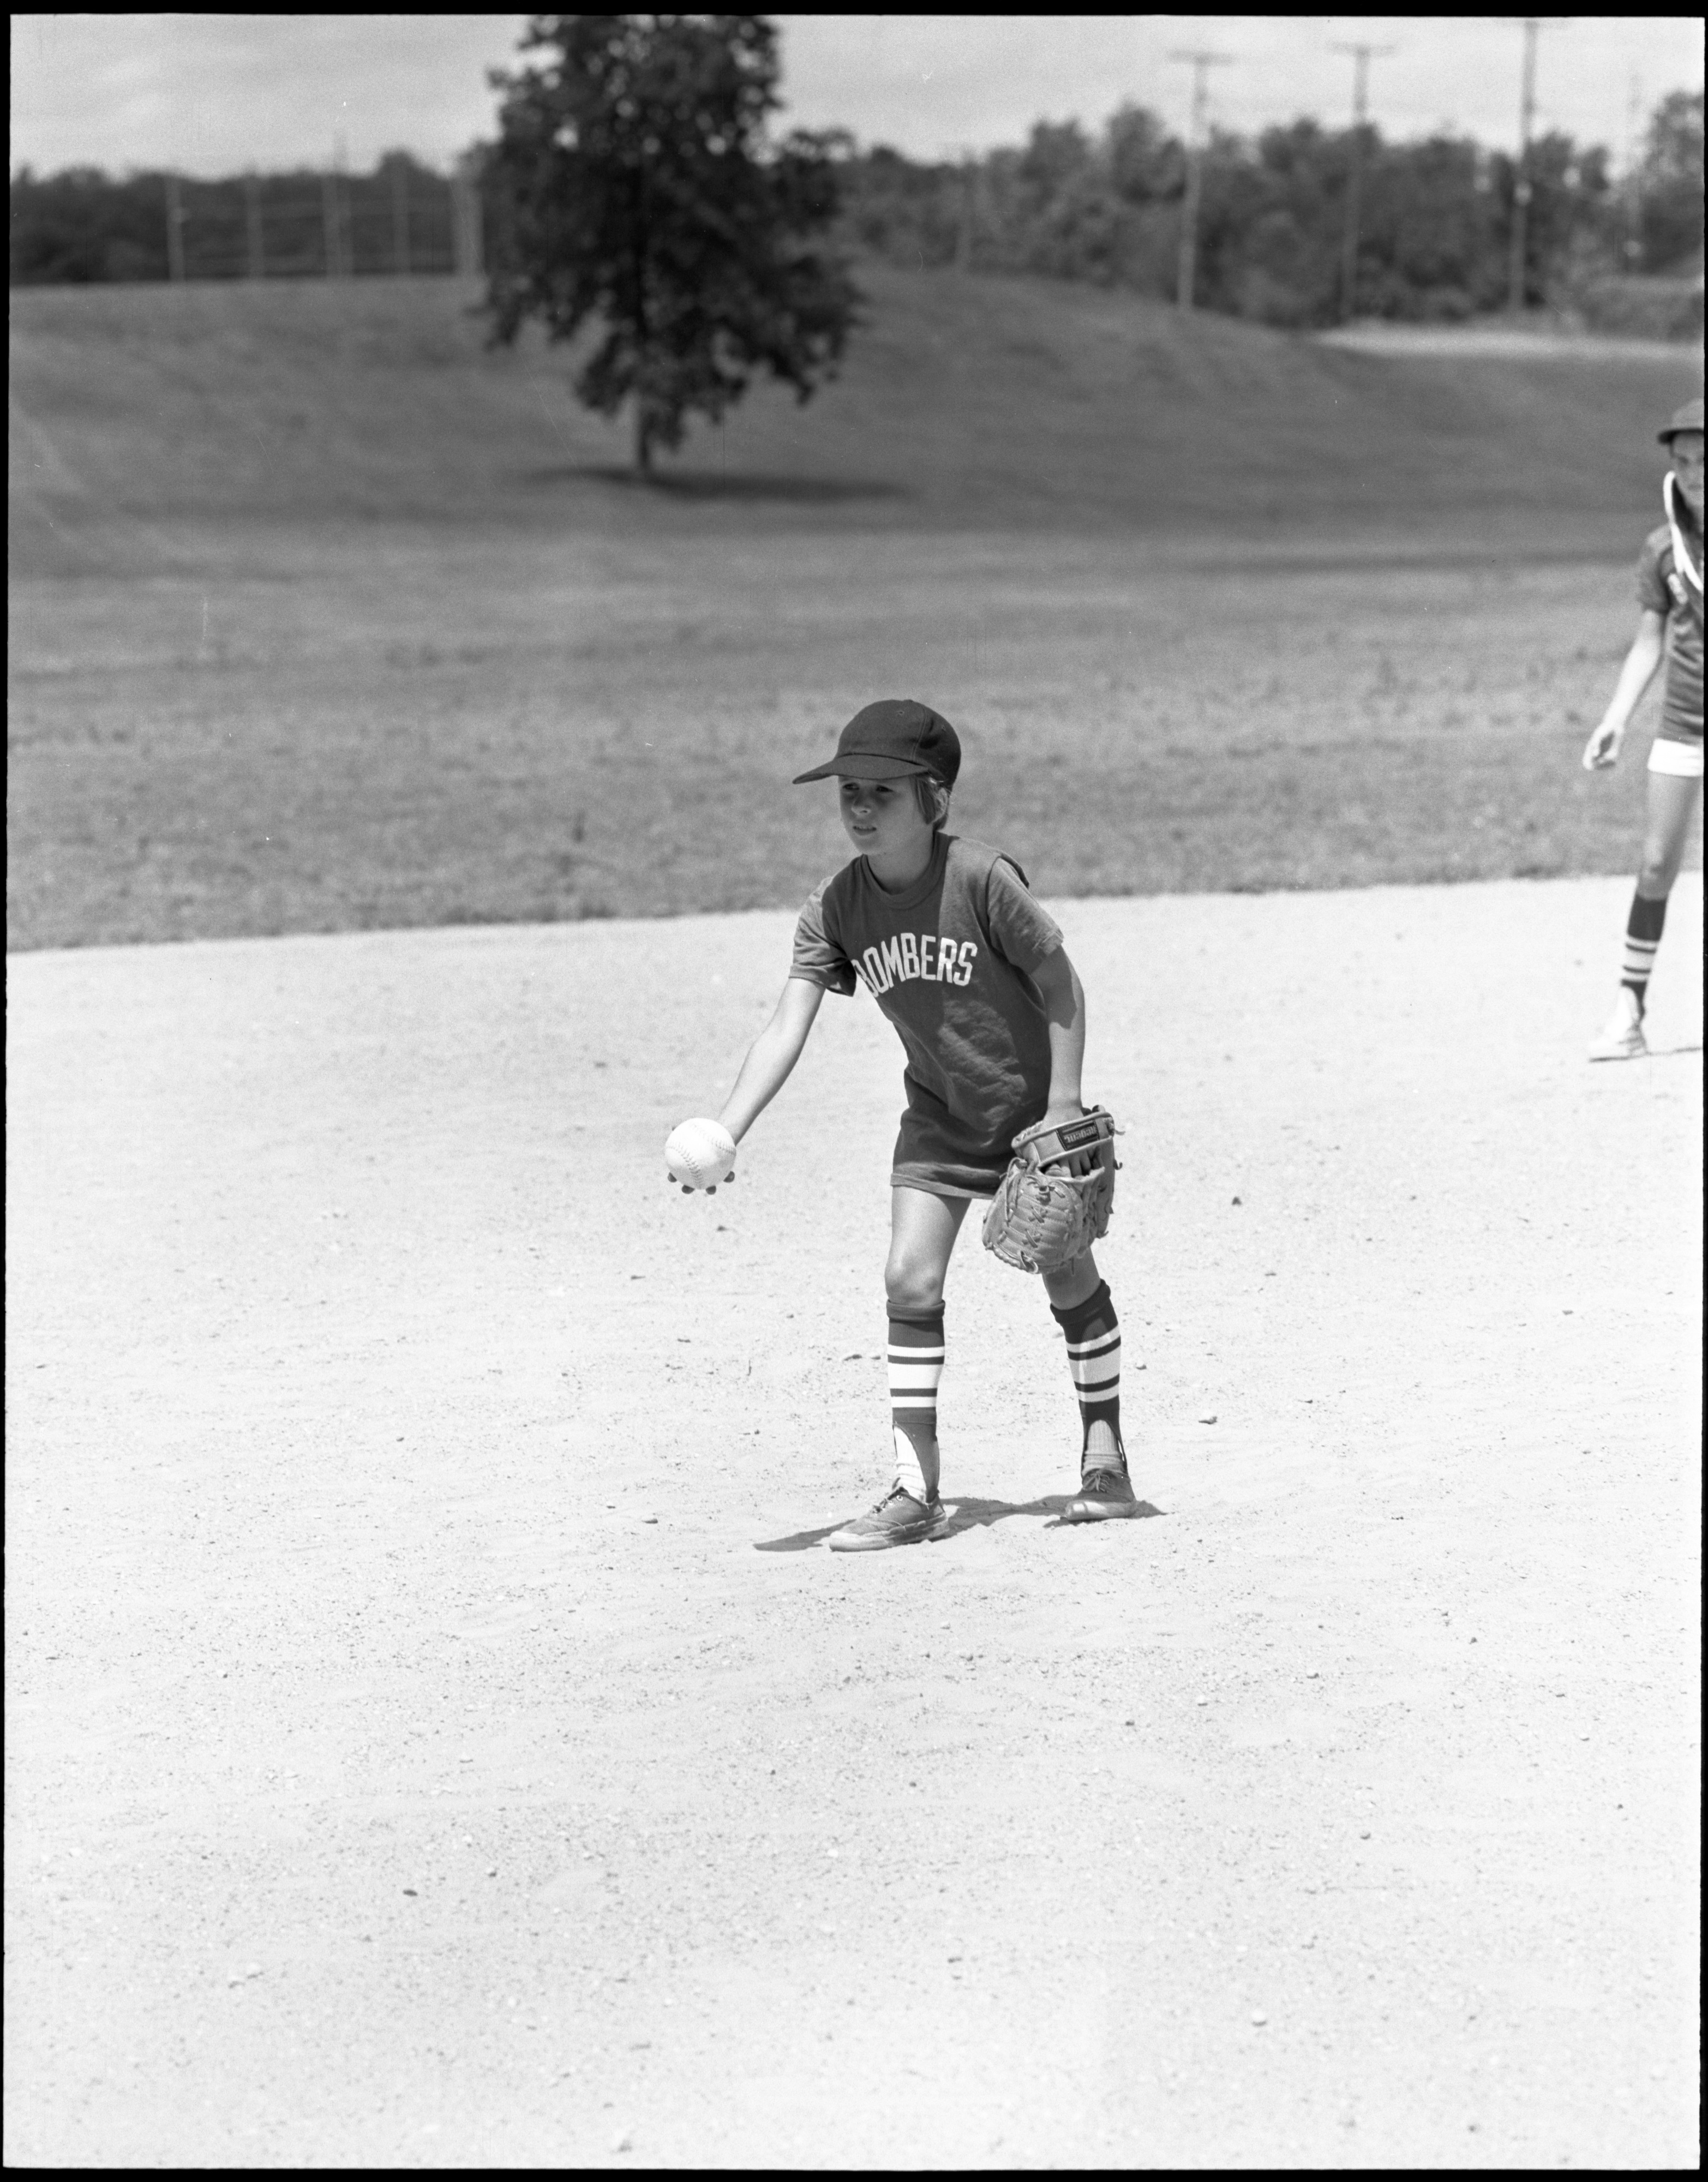 Girls Softball - Sloane Staples On The Pitcher's Mound, July 1972 image